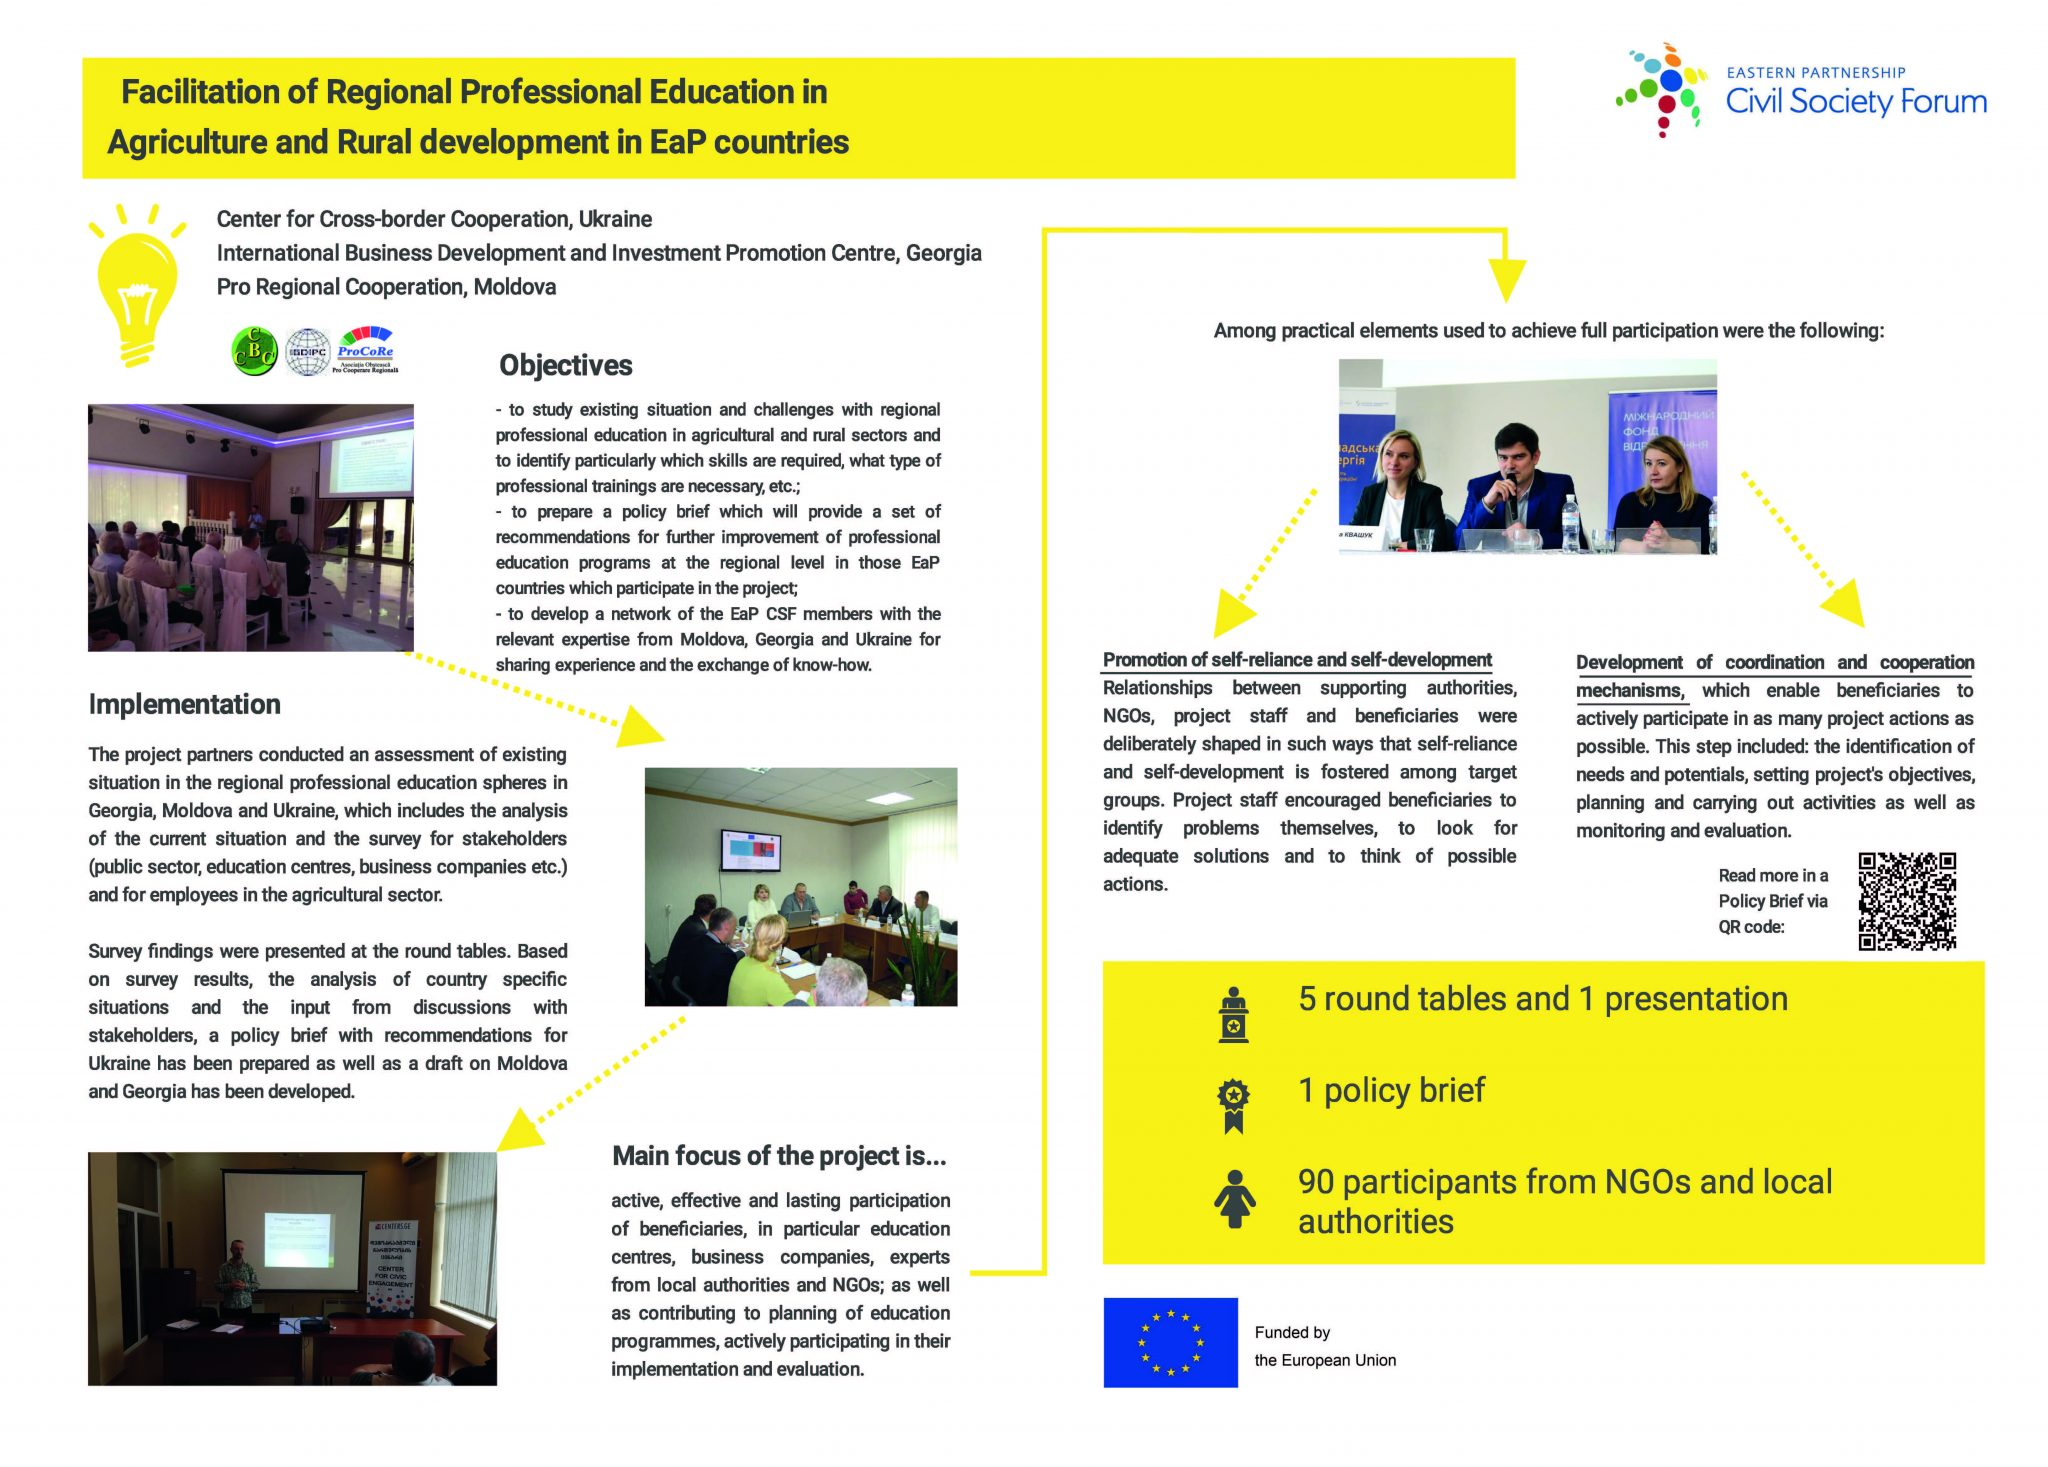 Facilitation of Regional Professional Education in Agriculture and Rural Development in EaP countries